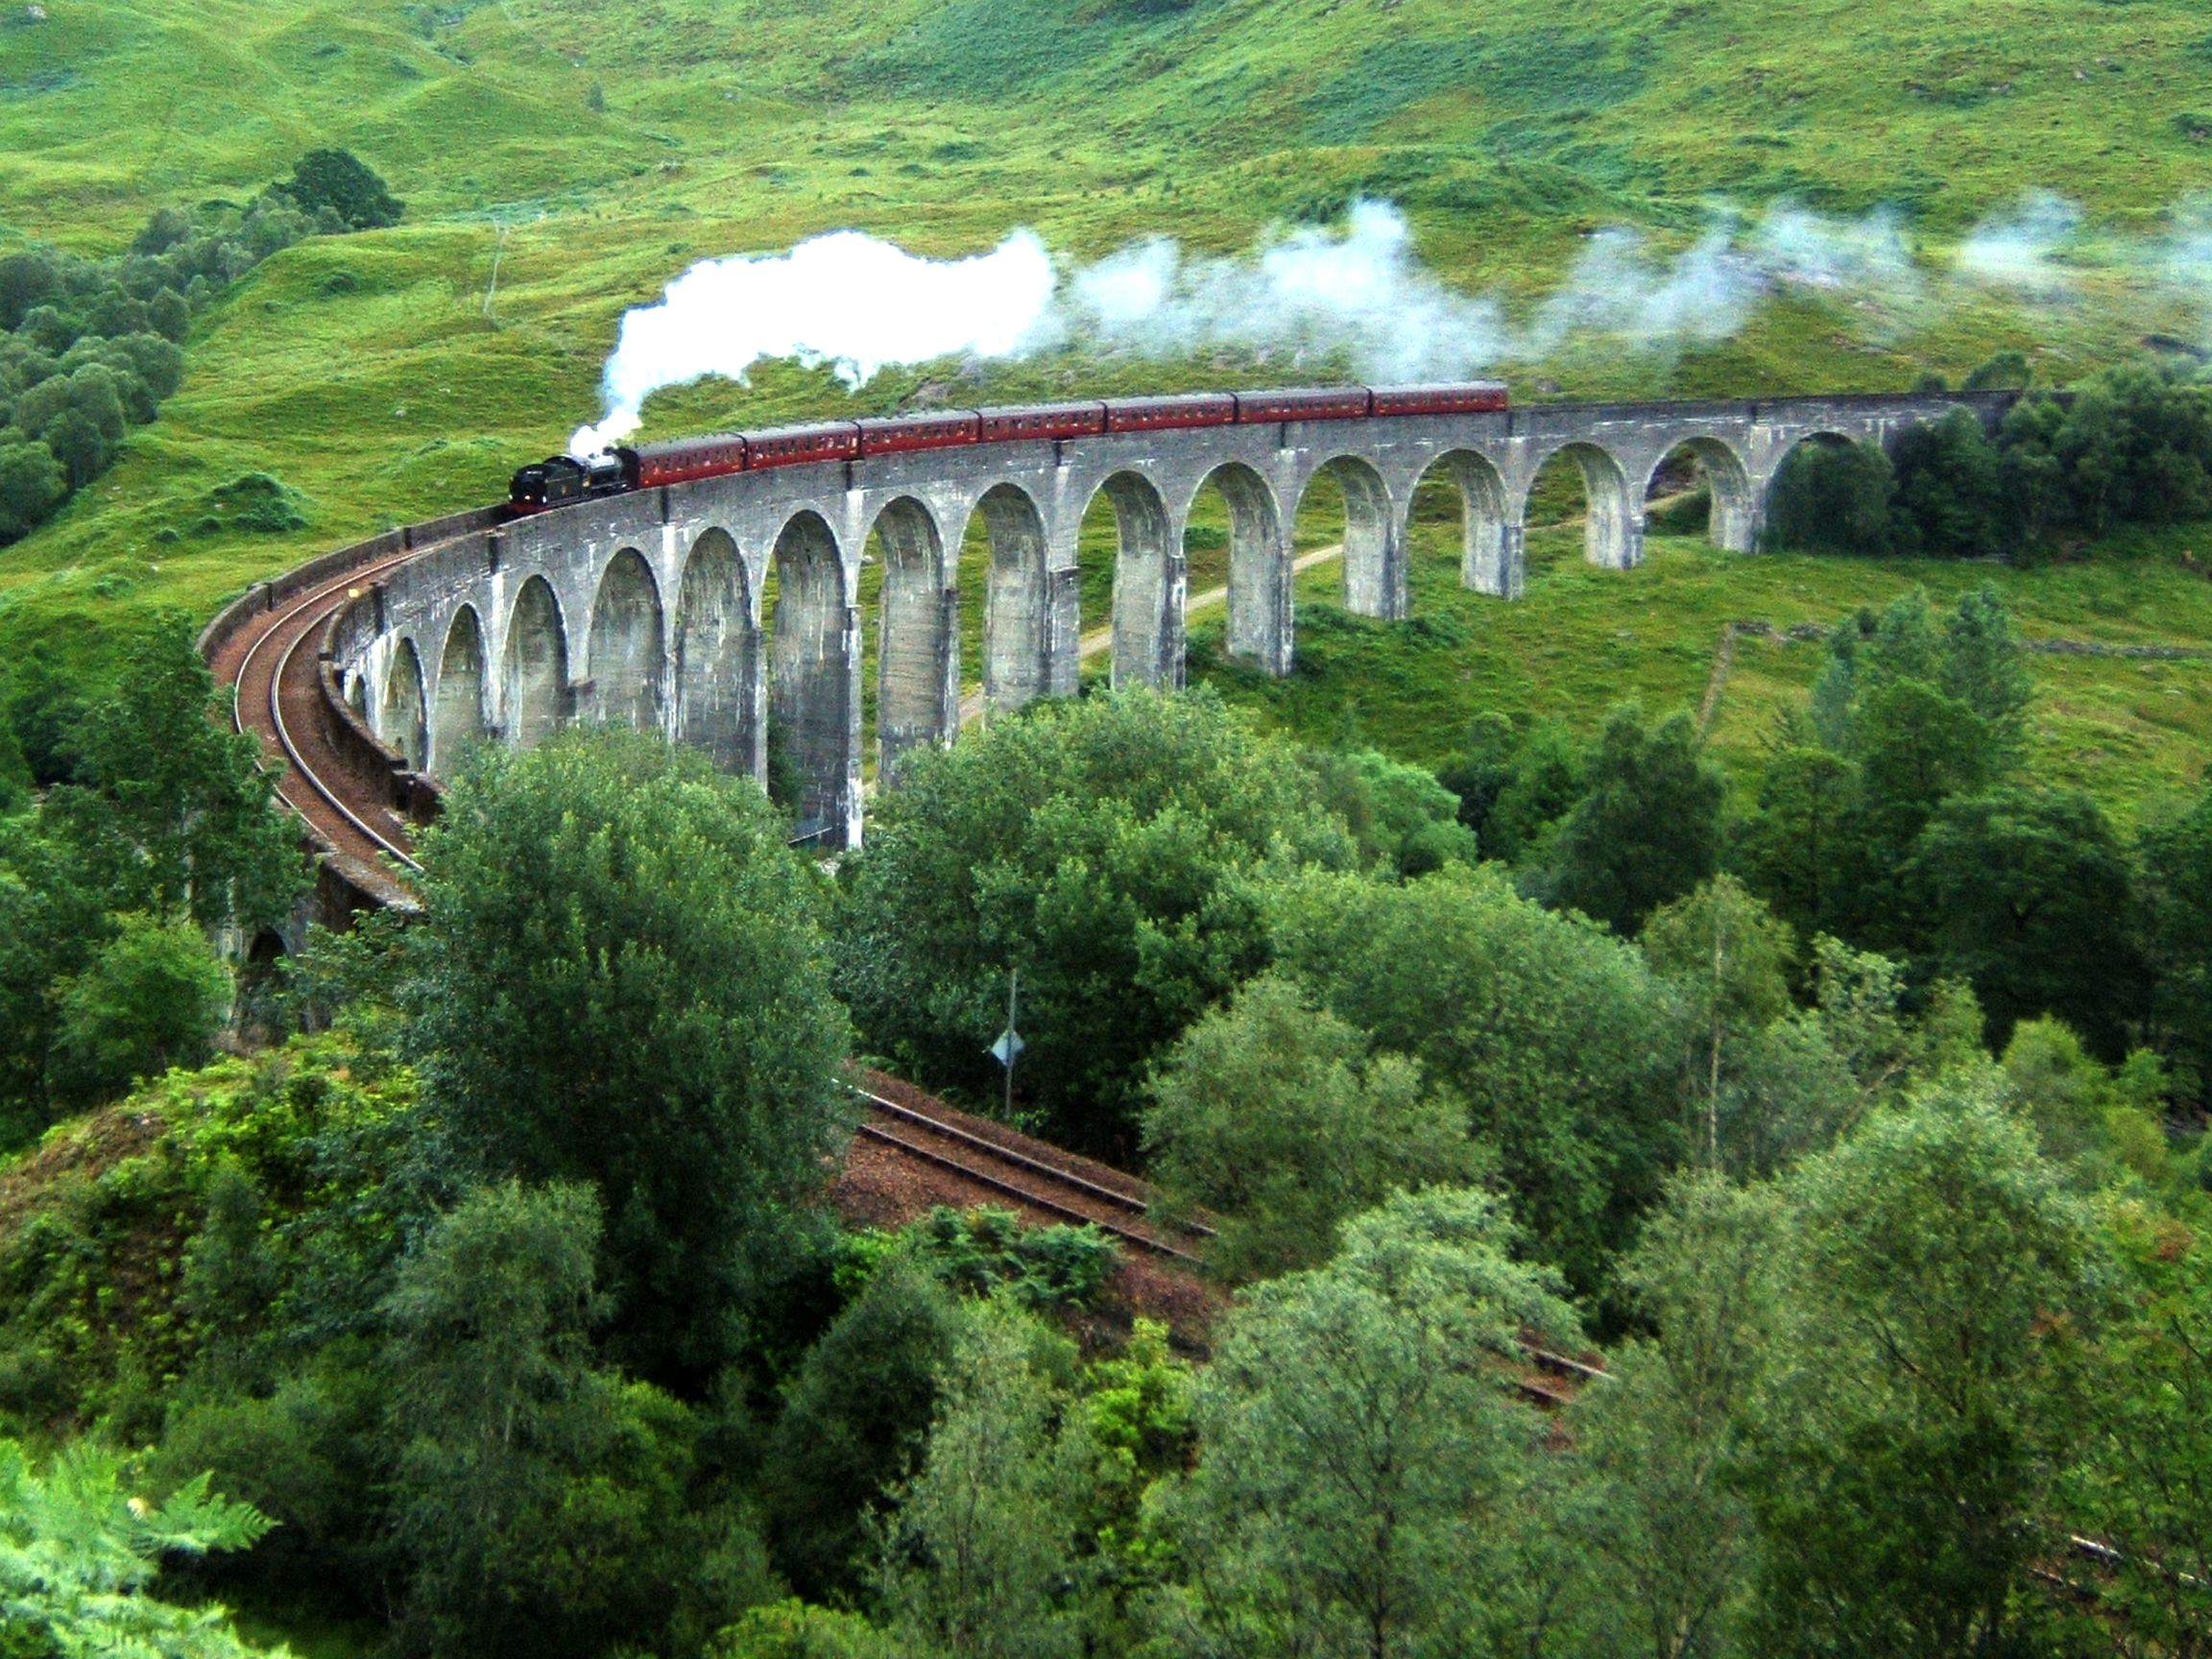 https://commons.wikimedia.org/wiki/File:Glenfinnan_Viaduct.jpg